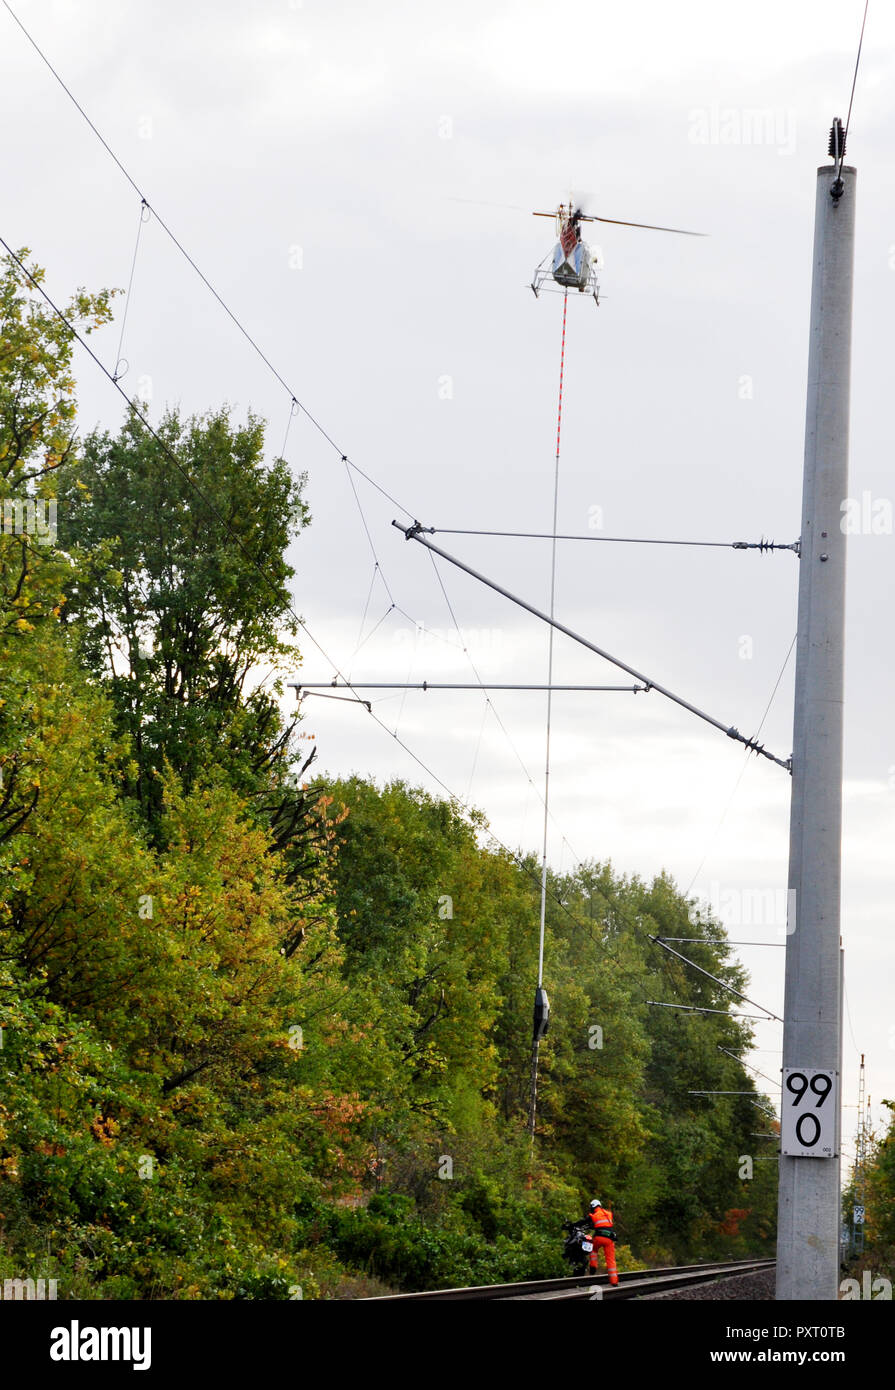 Vetschau, Germany. 24th Oct, 2018. 24 October 2018, Germany, Vetschau: A helicopter trims the trees on the section between Vetschau and Cottbus. Over a distance of 20 kilometres, the trees on both sides of the tracks are cut back. Credit: Anna Ringle/dpa-Zentralbild/ZB/dpa/Alamy Live News - Stock Image